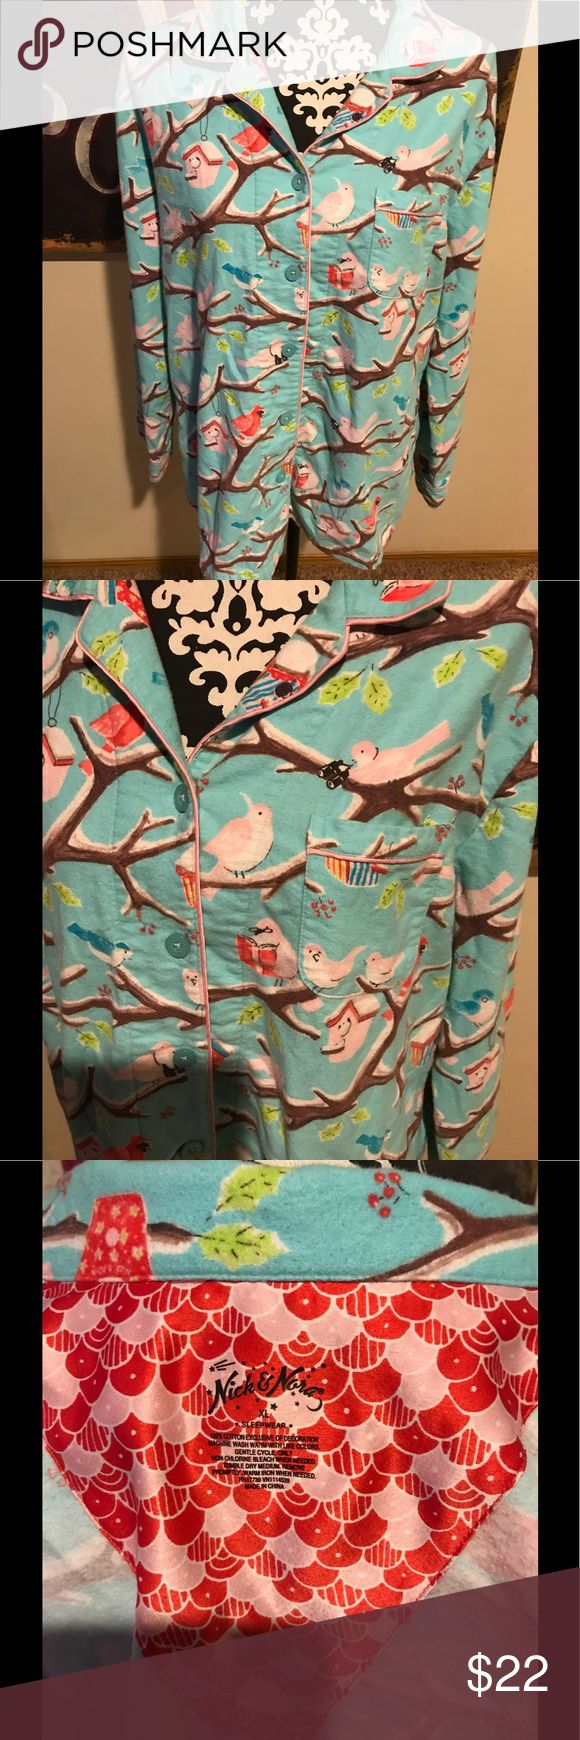 Nick And Nora pajama set XL Nick And Nora pajama set 100% cotton Size XL Light blue background featuring birds, bird houses and bird watching Pajamas are super cute and in excellent condition! Nick & Nora Intimates & Sleepwear Pajamas